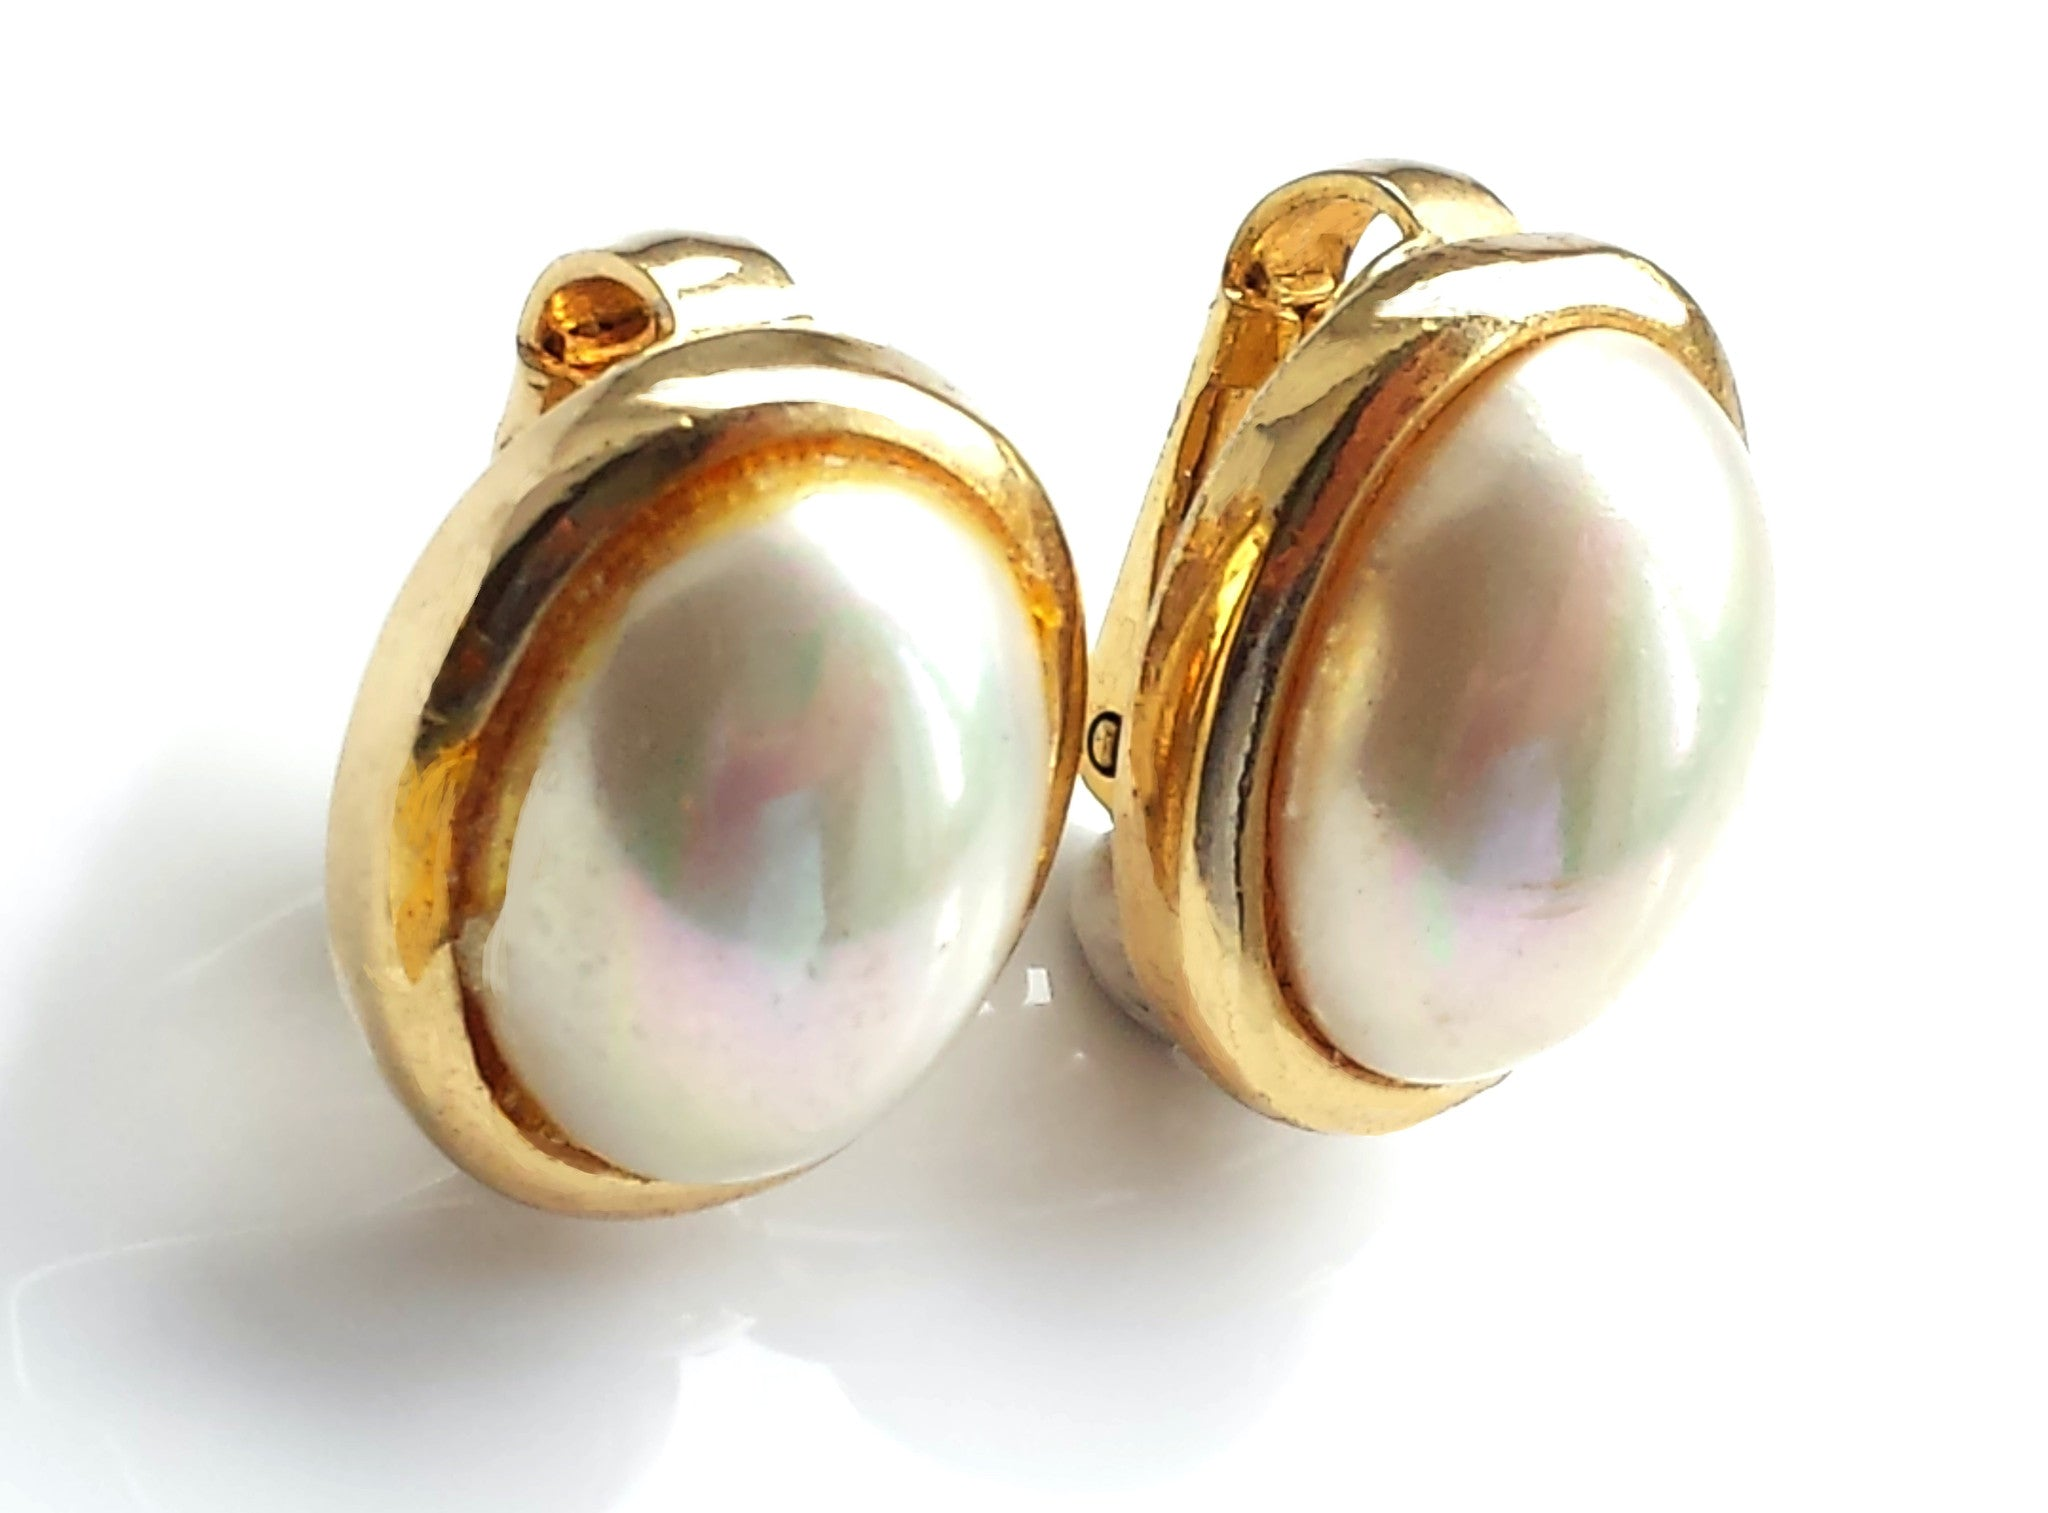 Vintage Christian Dior 1990s Faux Pearl Clipon Earrings, By Grossé, Germany